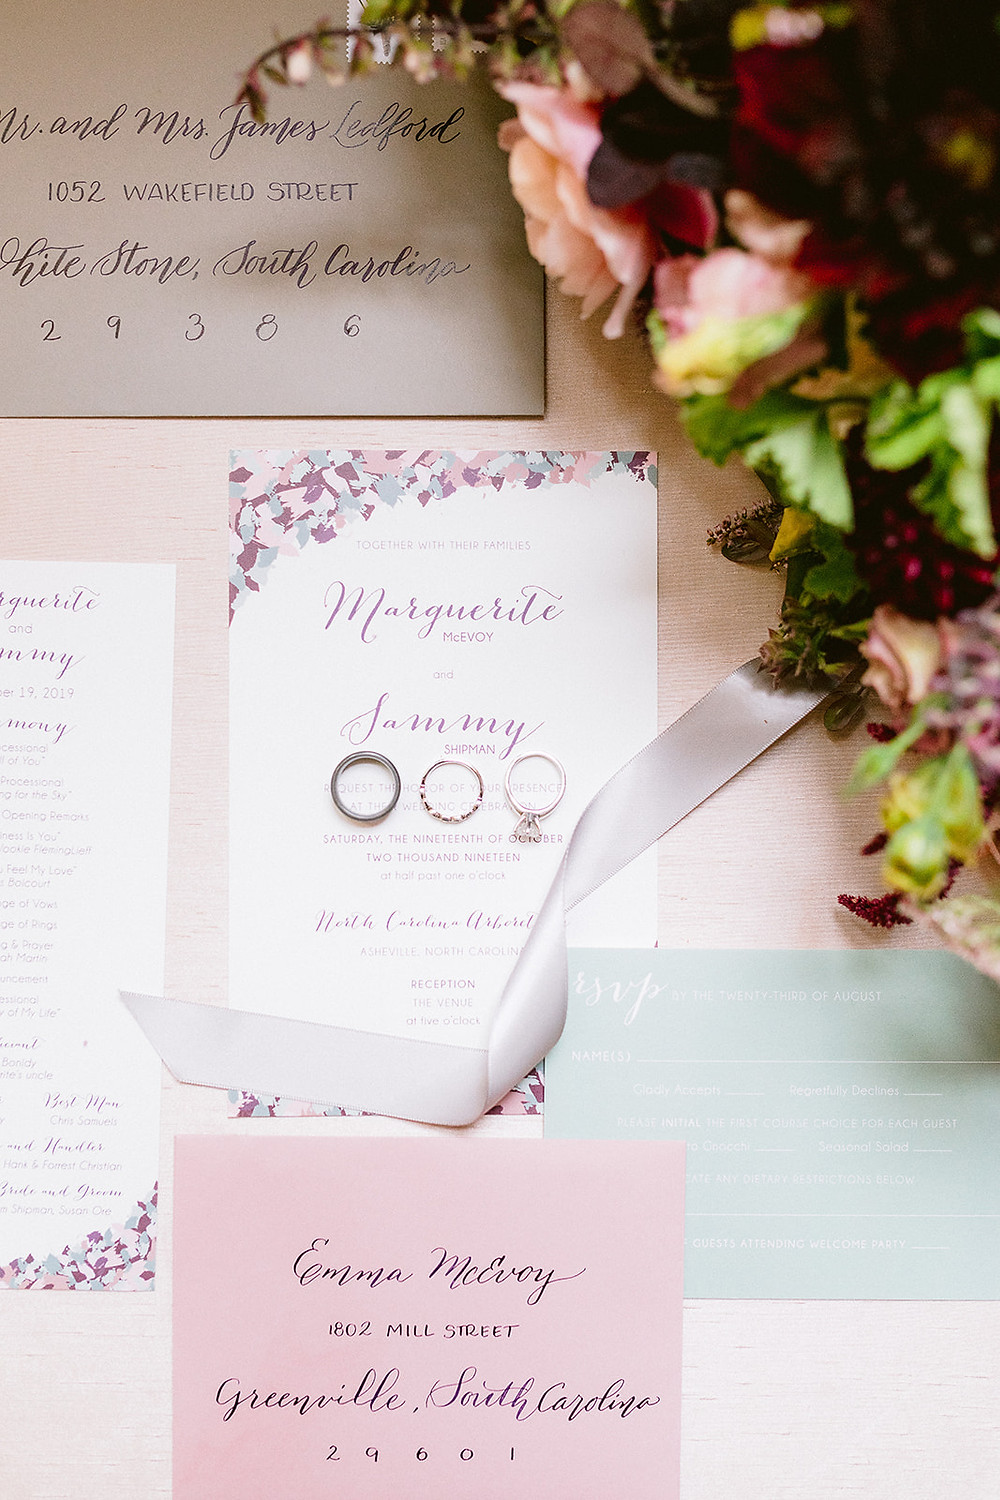 Every detail matters. Destination Wedding in Asheville, North Carolina. Moody Color Palate for Fall Wedding.